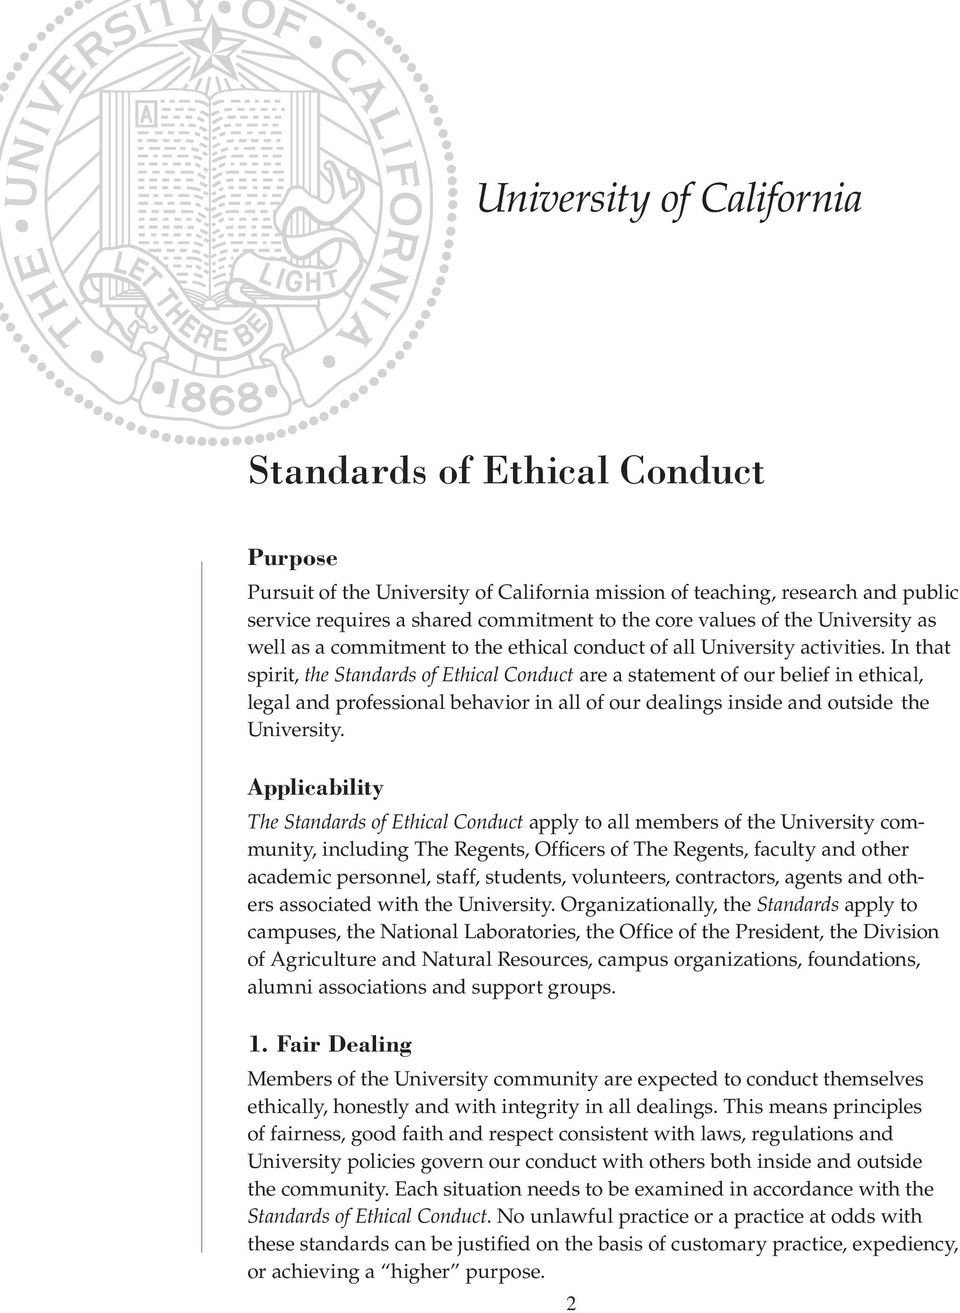 In that spirit, the Standards of Ethical Conduct are a statement of our belief in ethical, legal and professional behavior in all of our dealings inside and outside the University.